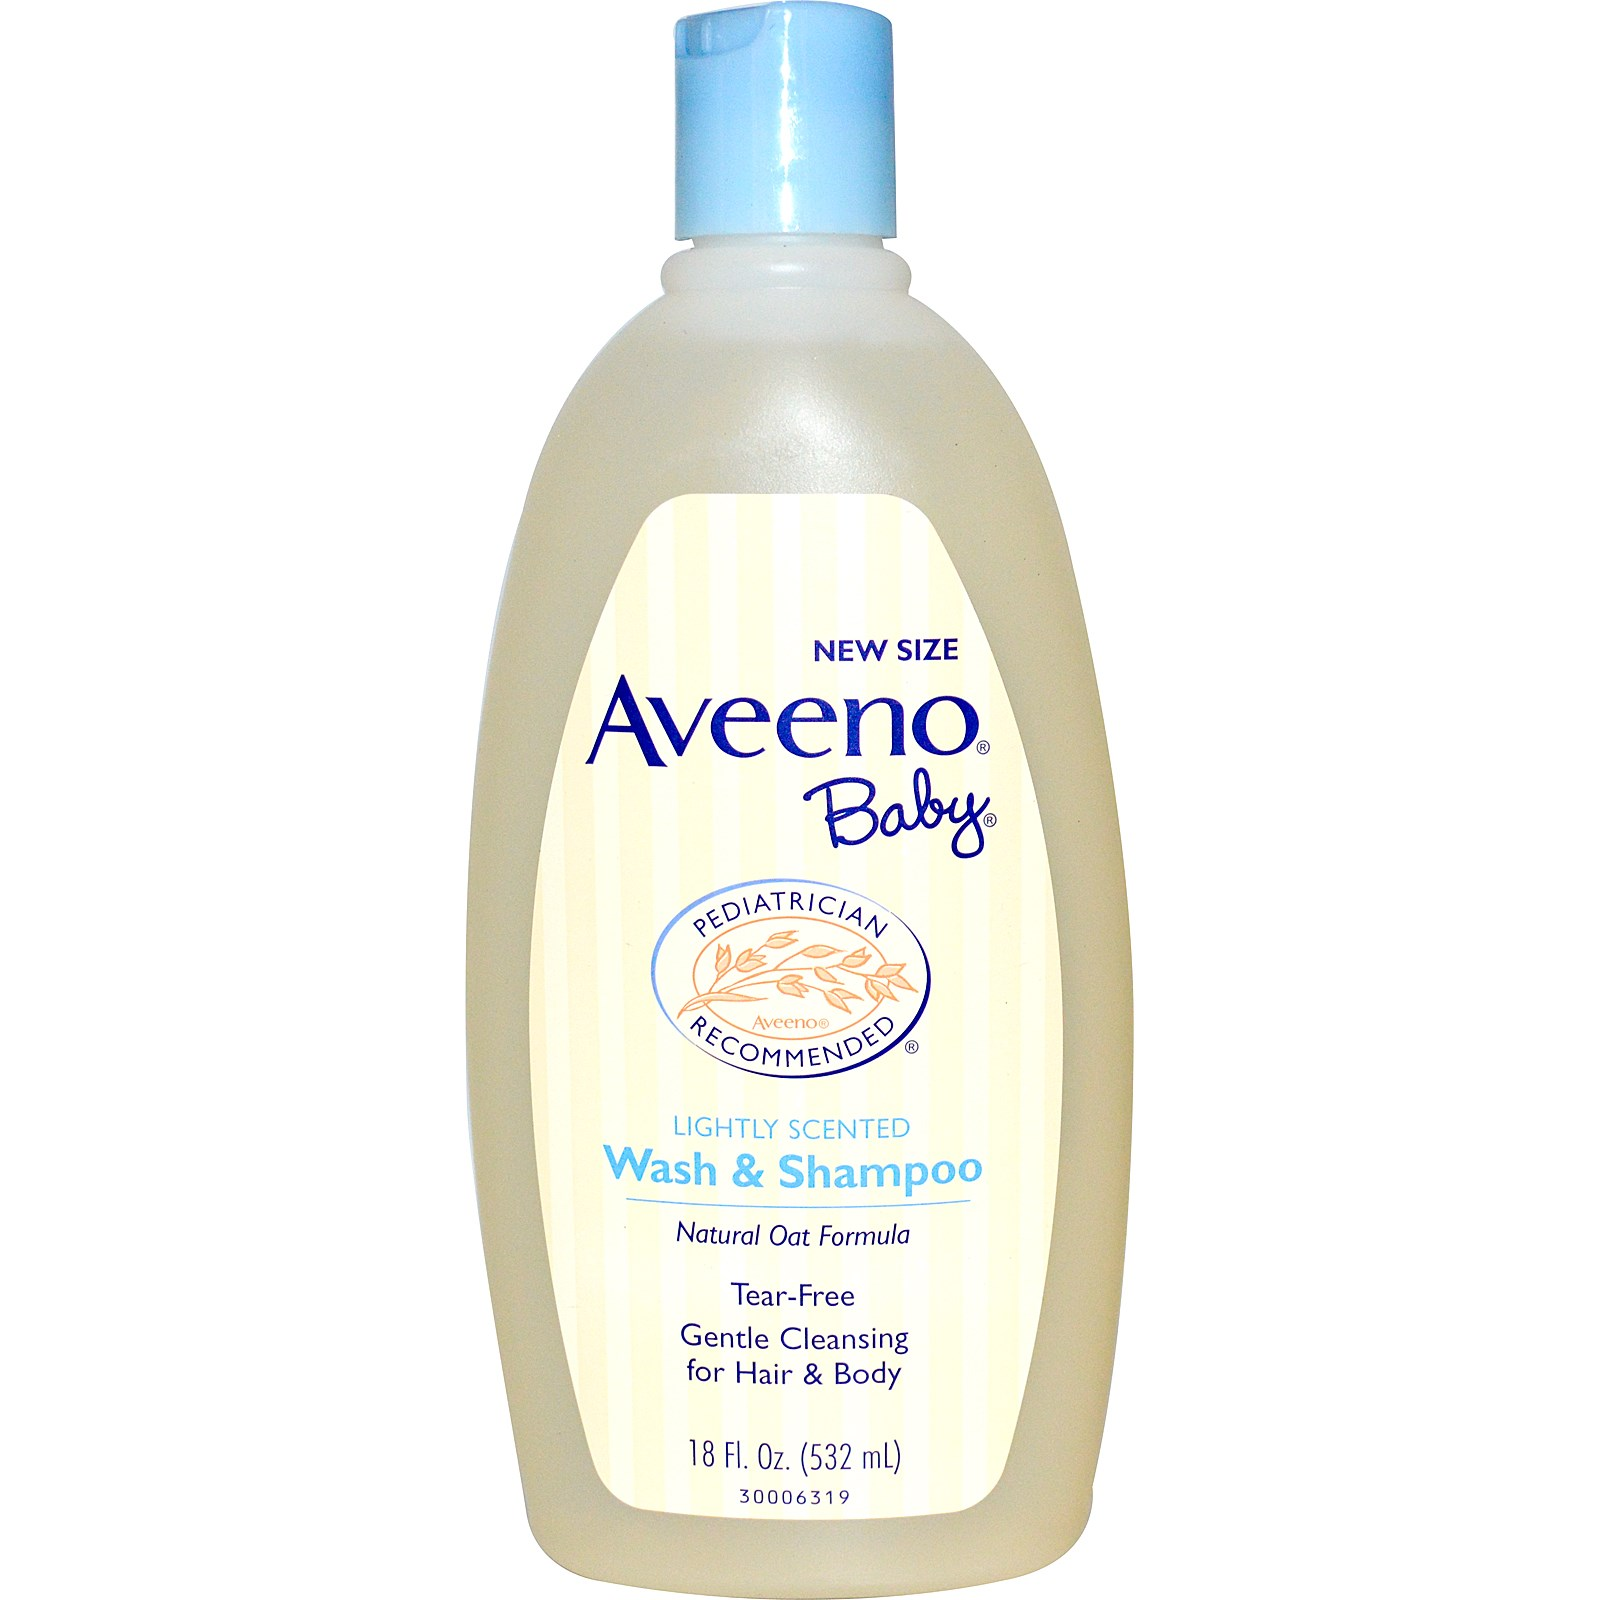 AVO 02390 1 1 - Aveeno Baby wash and shampoo